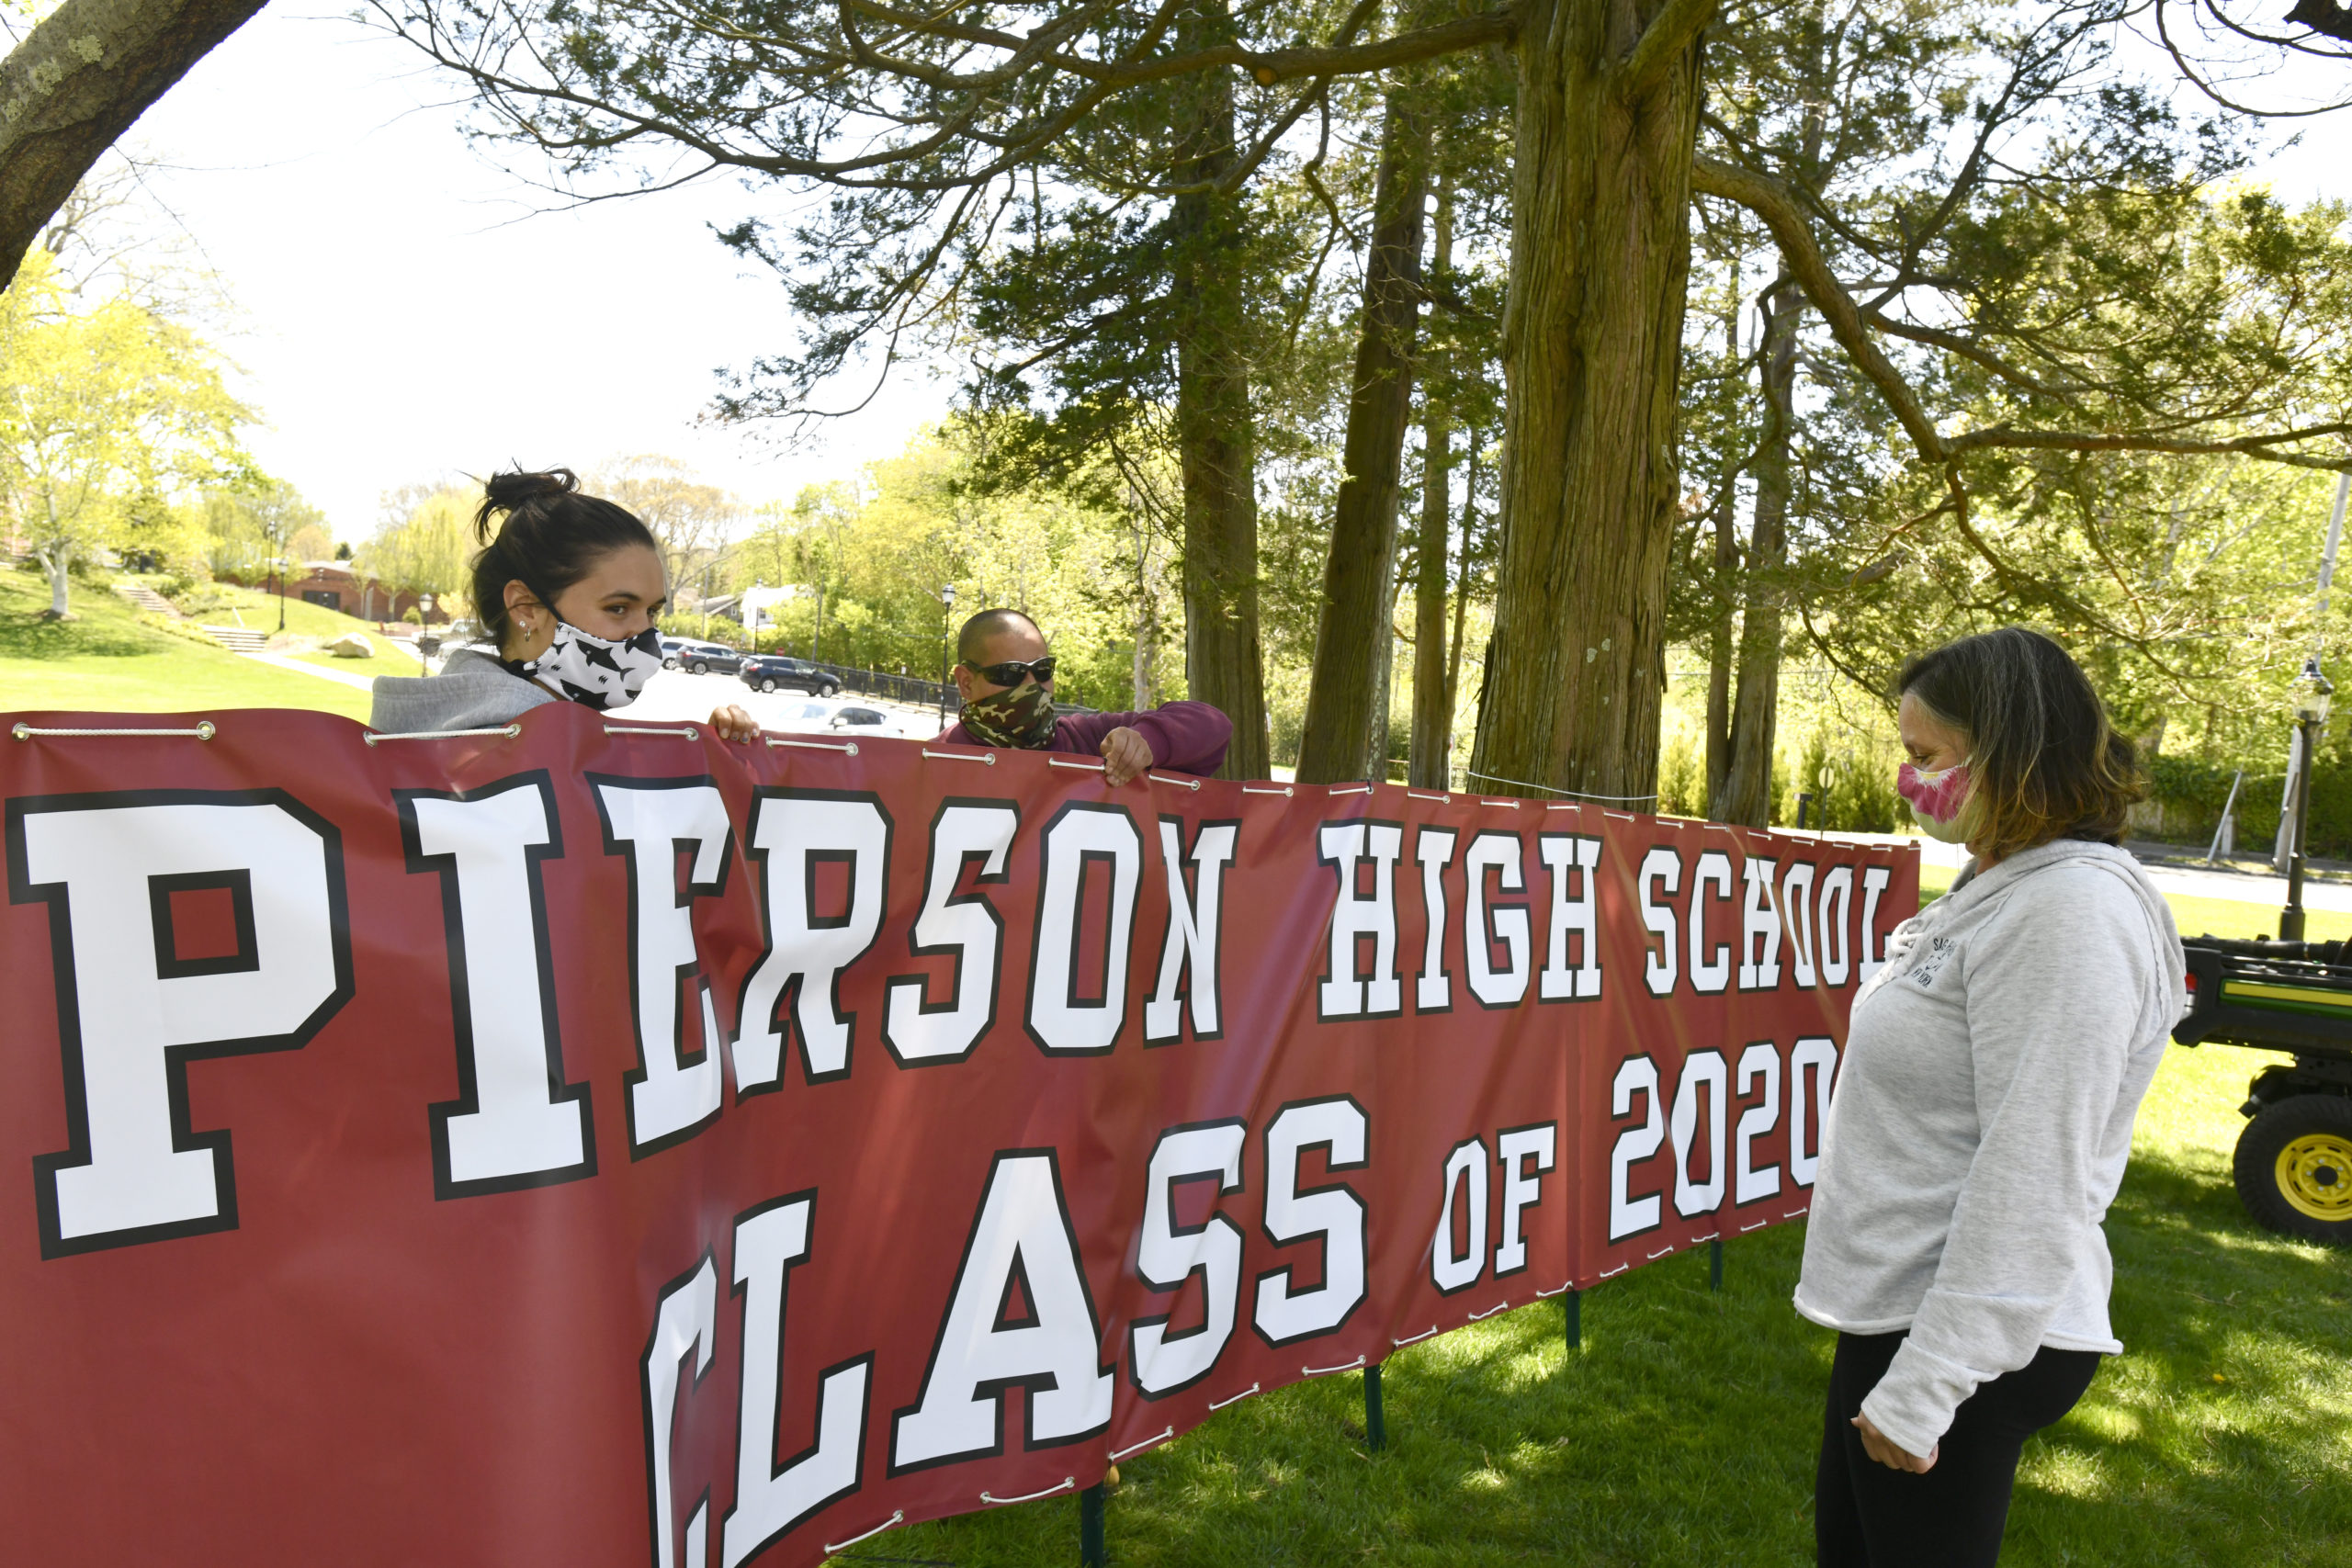 Emiley Nill, Jorge L. Maya and Fran Nill put up the sign at Pierson High School on Wednesday.